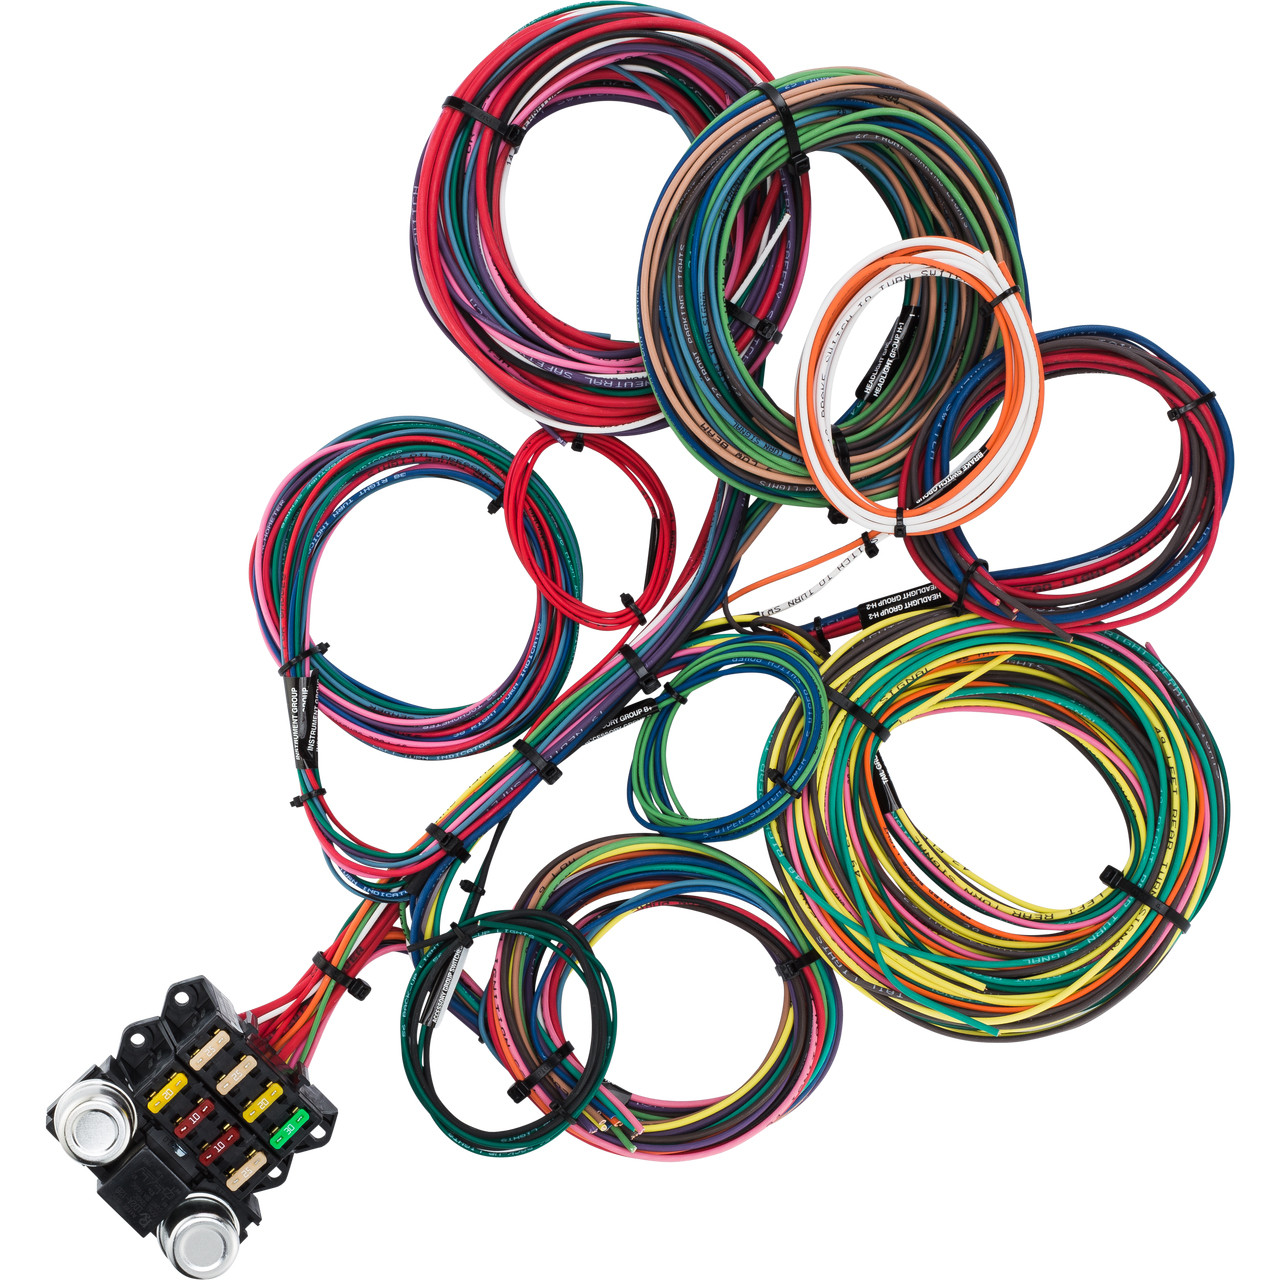 hight resolution of 8 circuit budget wire harness kwikwire com electrify your ride kwik wire ford alt diagram